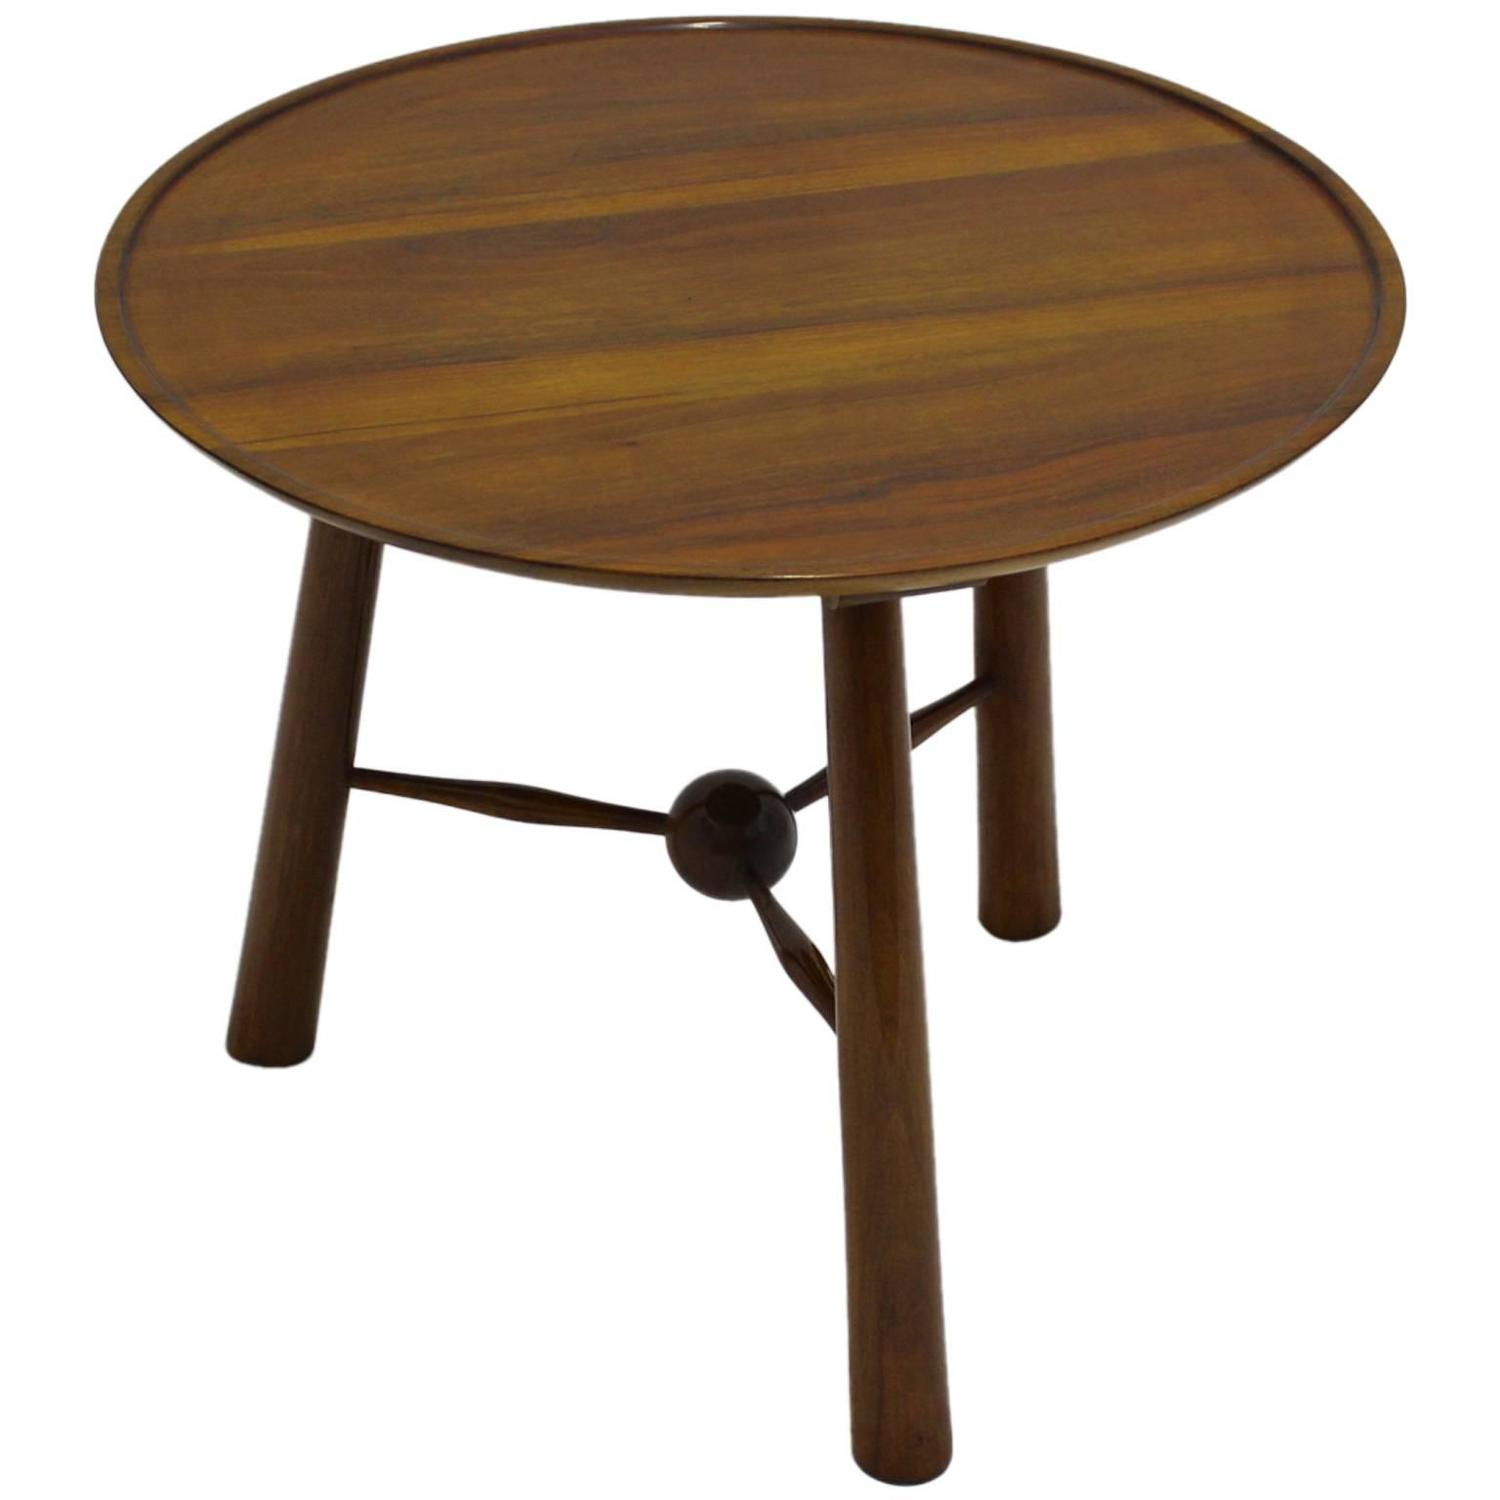 Austrian art deco coffee table in the circle of josef frank by austrian art deco coffee table in the circle of josef frank by walter sobotka for sale at 1stdibs geotapseo Images